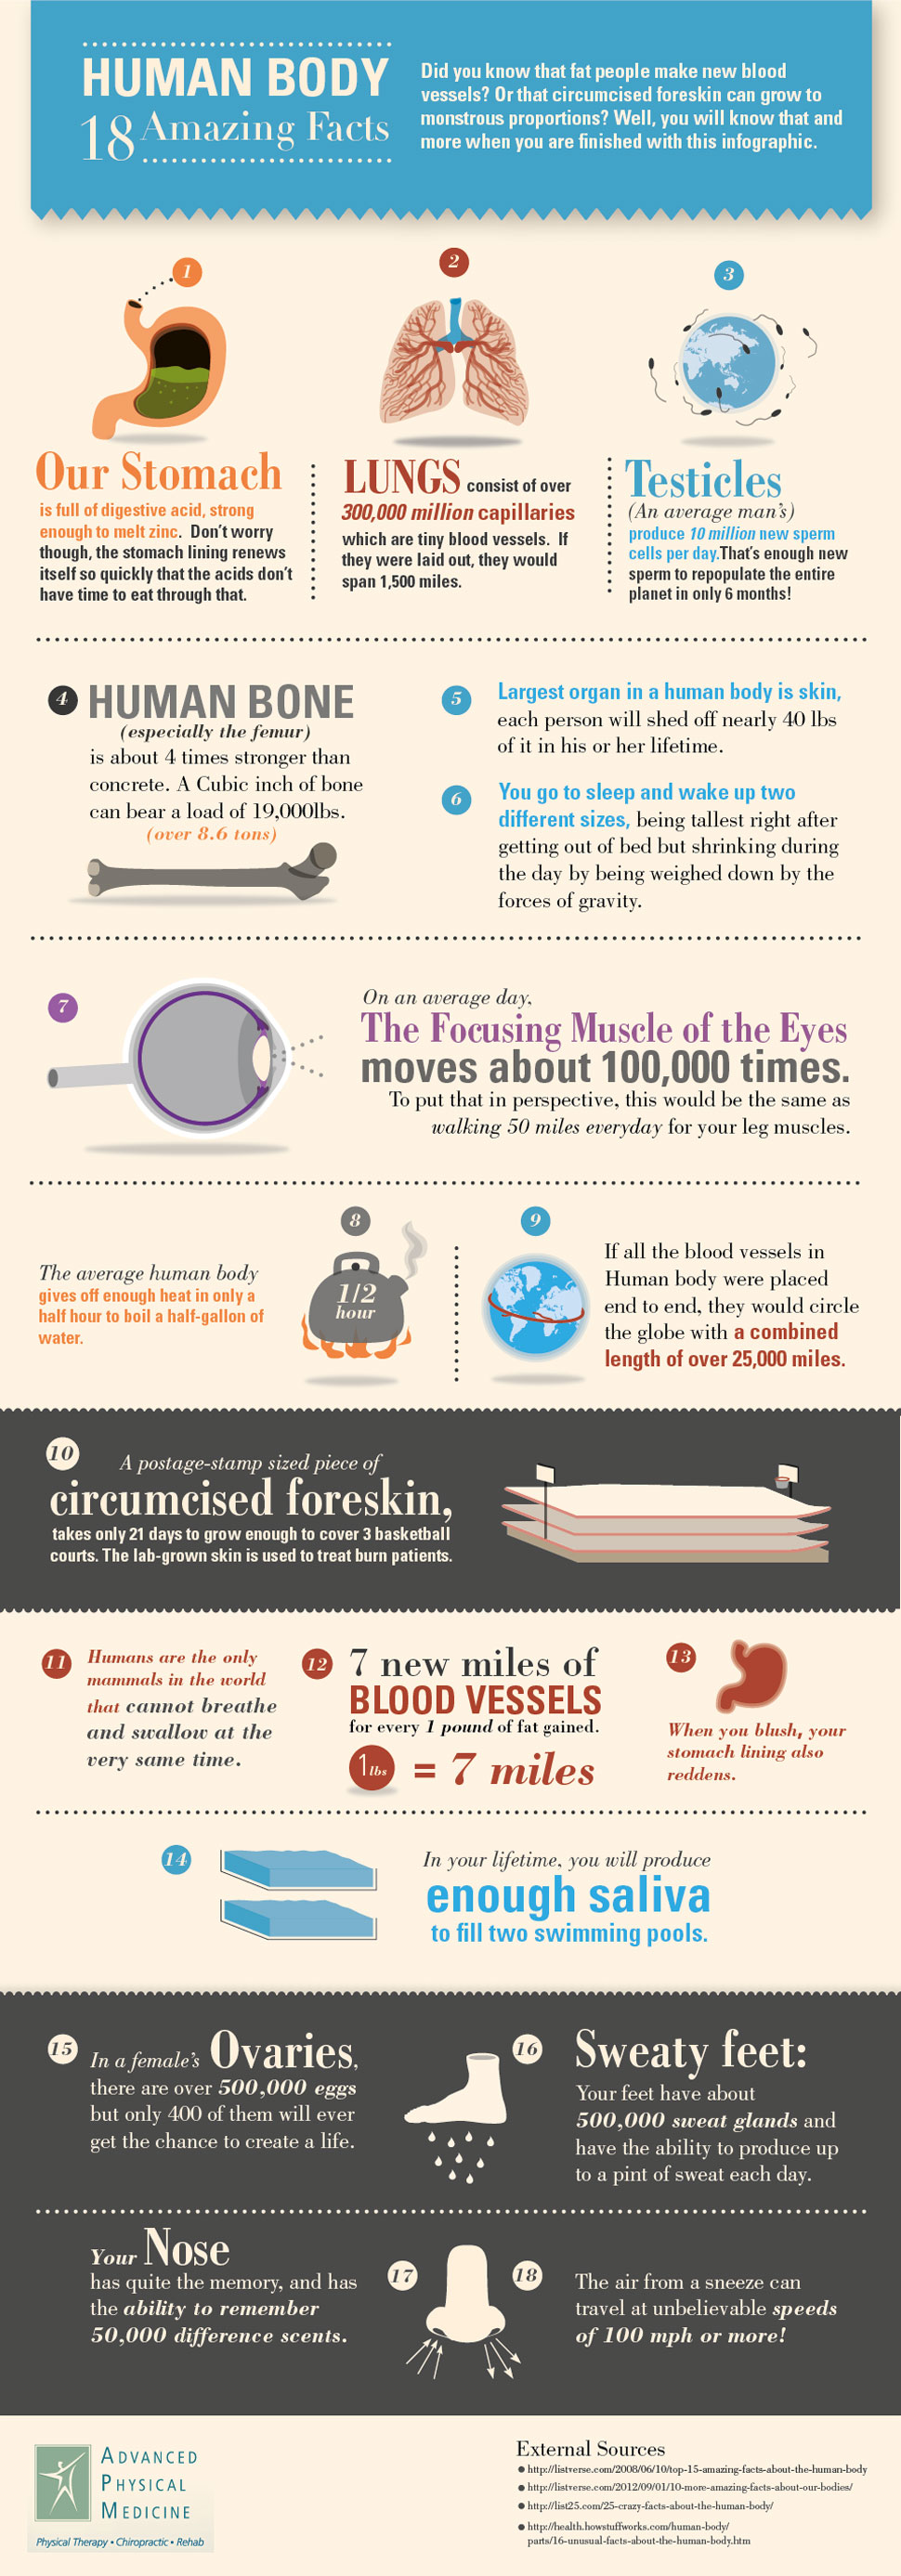 18 Amazing Facts About The Human Body | Visual.ly